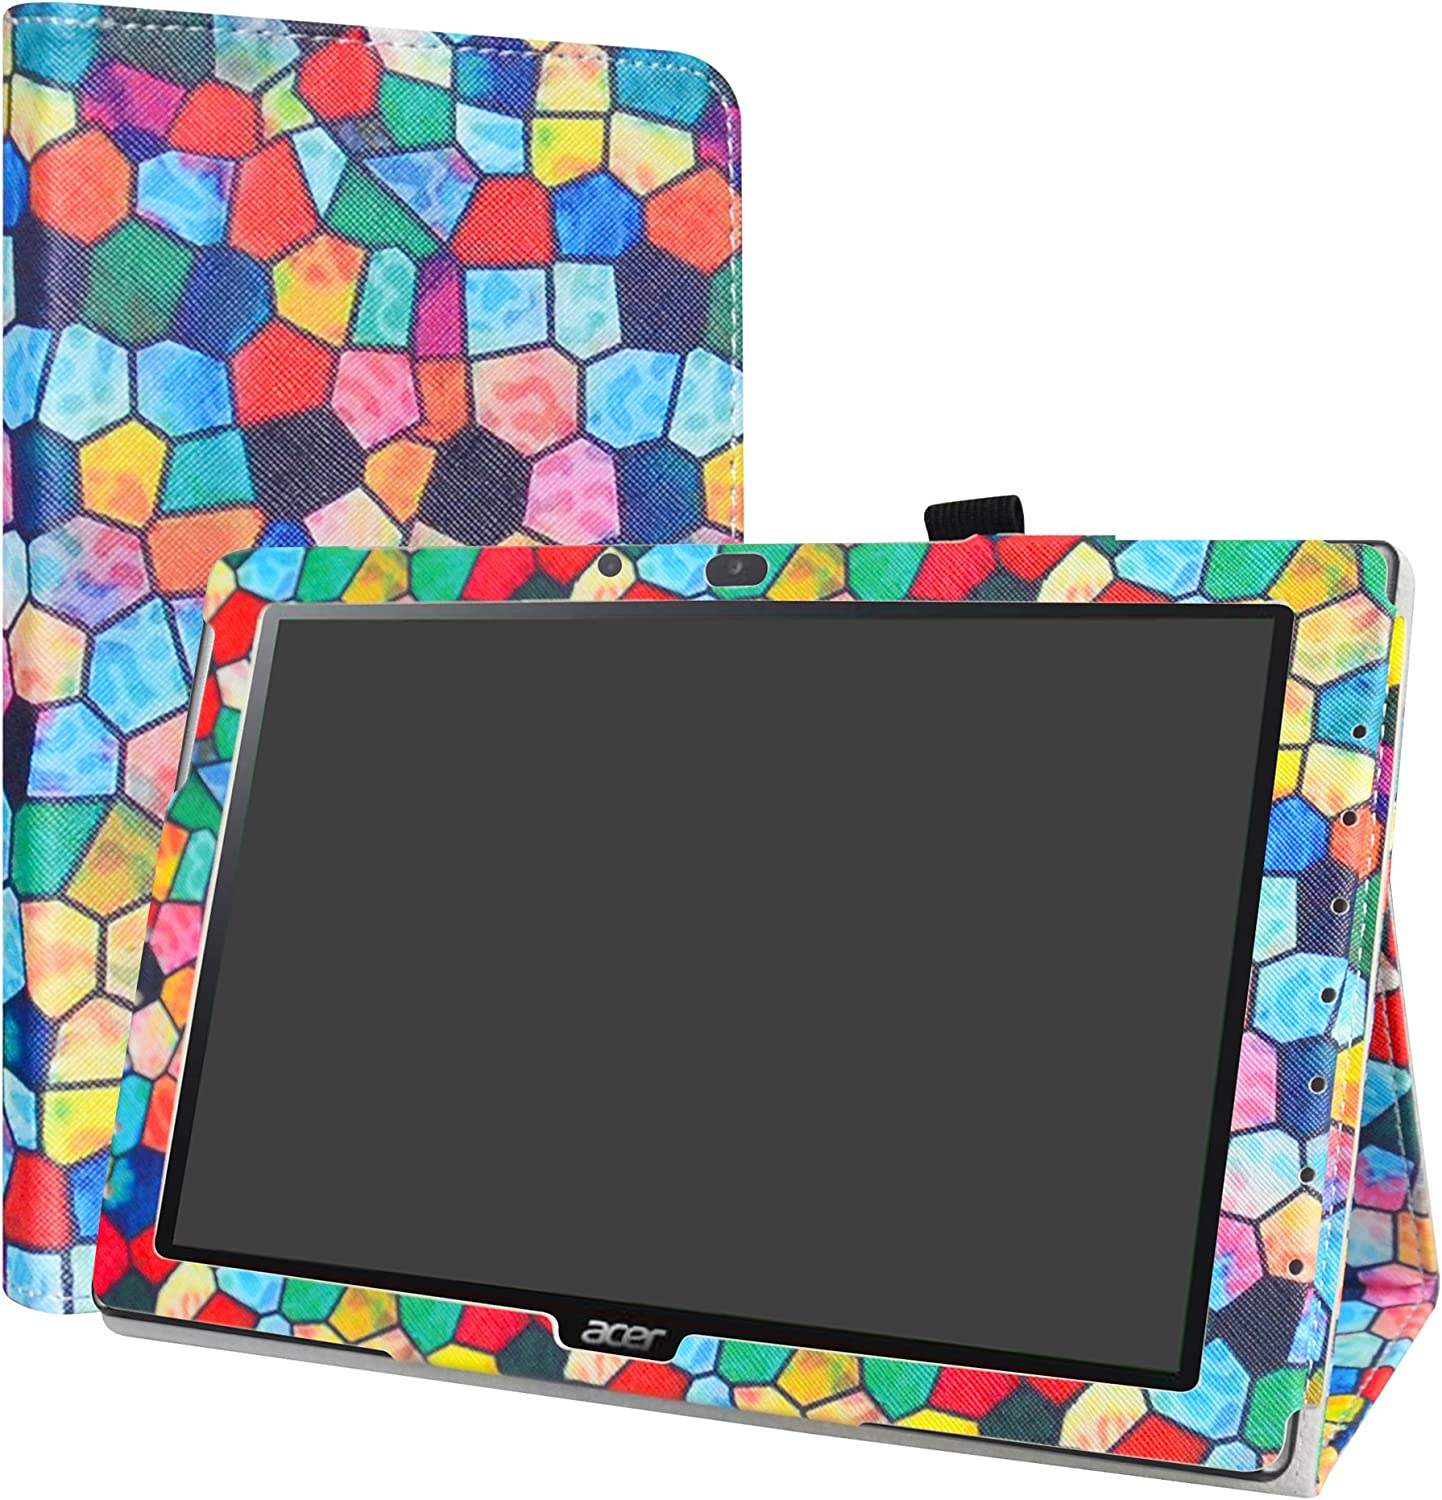 "Acer Iconia One 10 B3-A40 Case,LiuShan PU Leather Slim Folding Stand Cover for 10.1"" Acer Iconia One 10 B3-A40 Android Tablet,Stained Glass"